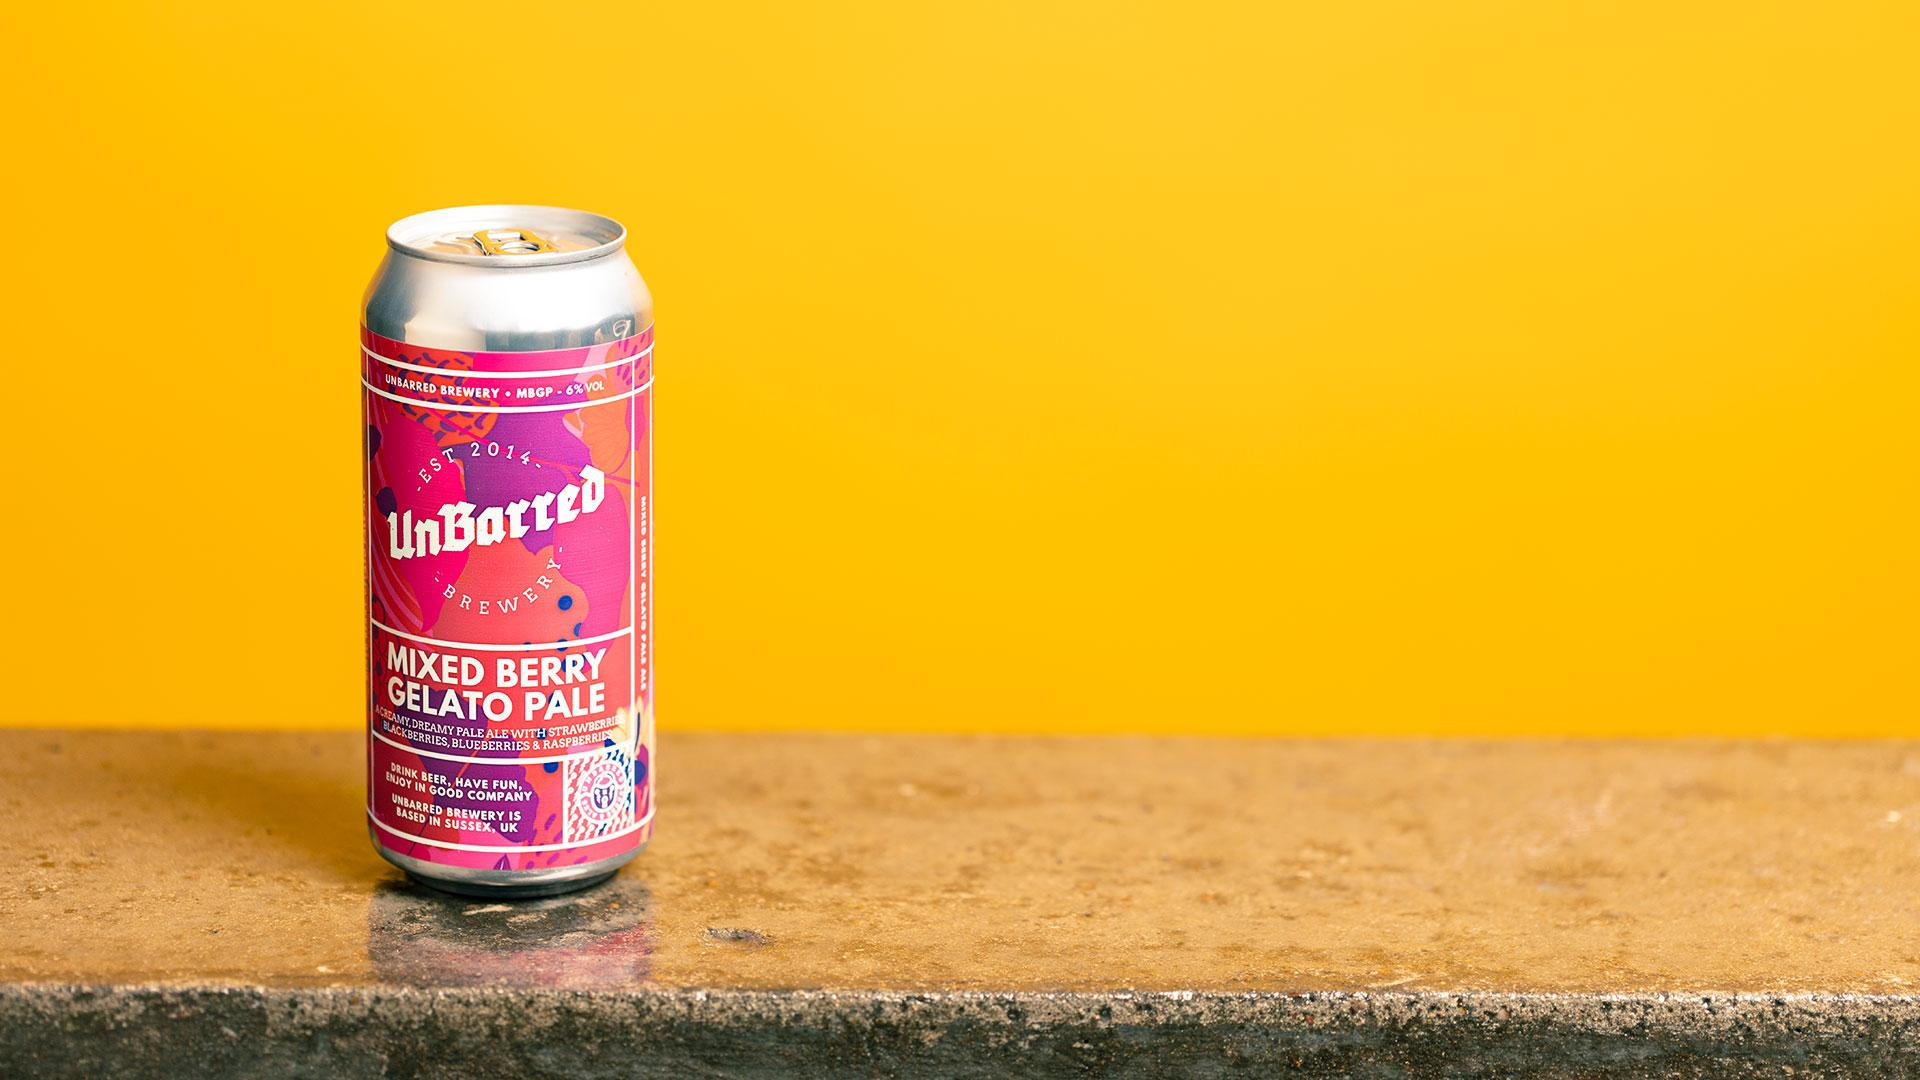 Tesco craft beer: UnBarred Mixed Berry Gelato Pale Ale